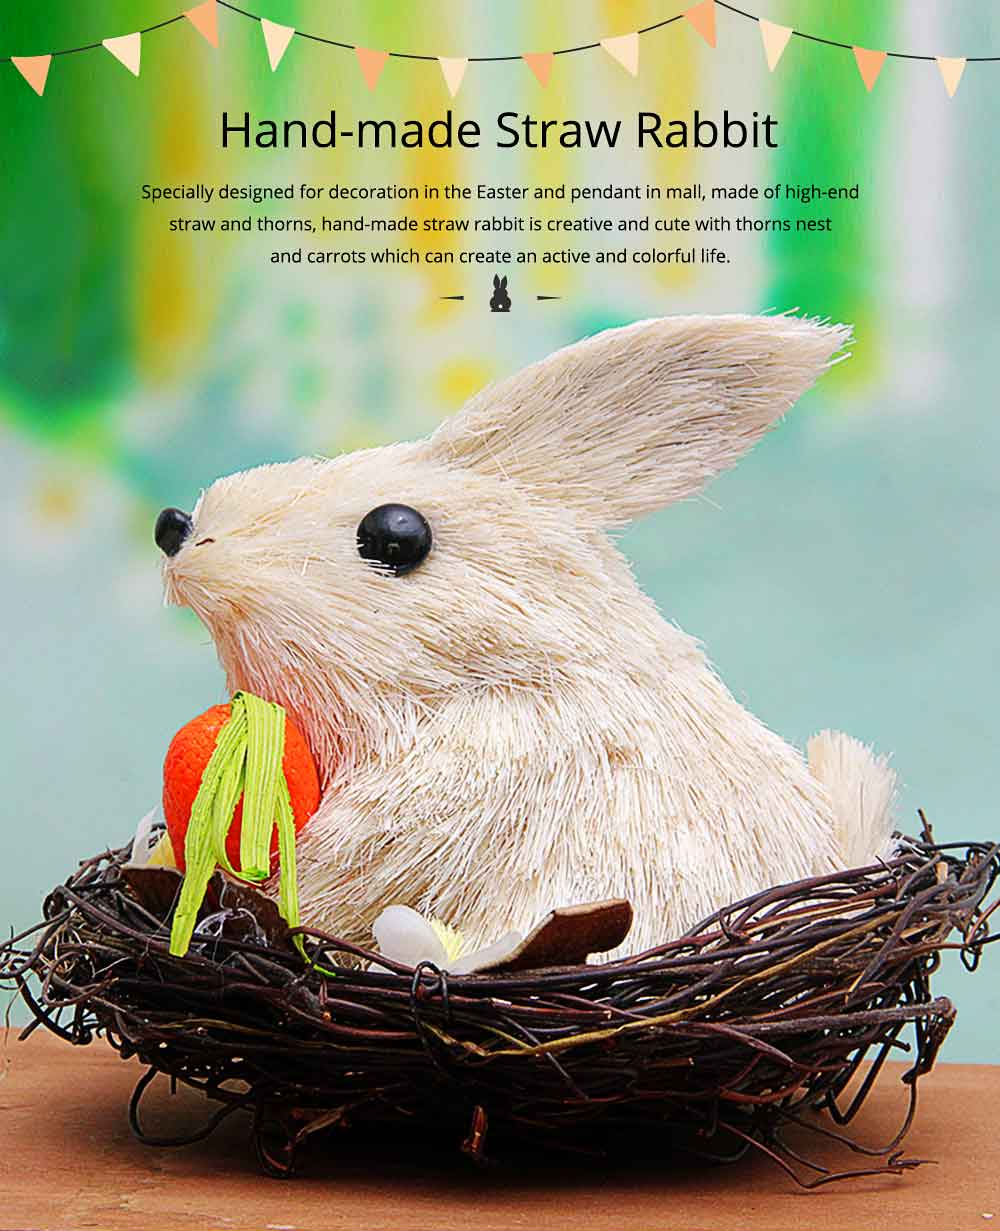 Easter Decorations - Hand-made Straw Bunny with Thorns Nest and Carrots, Mall and Shop Pendant 0